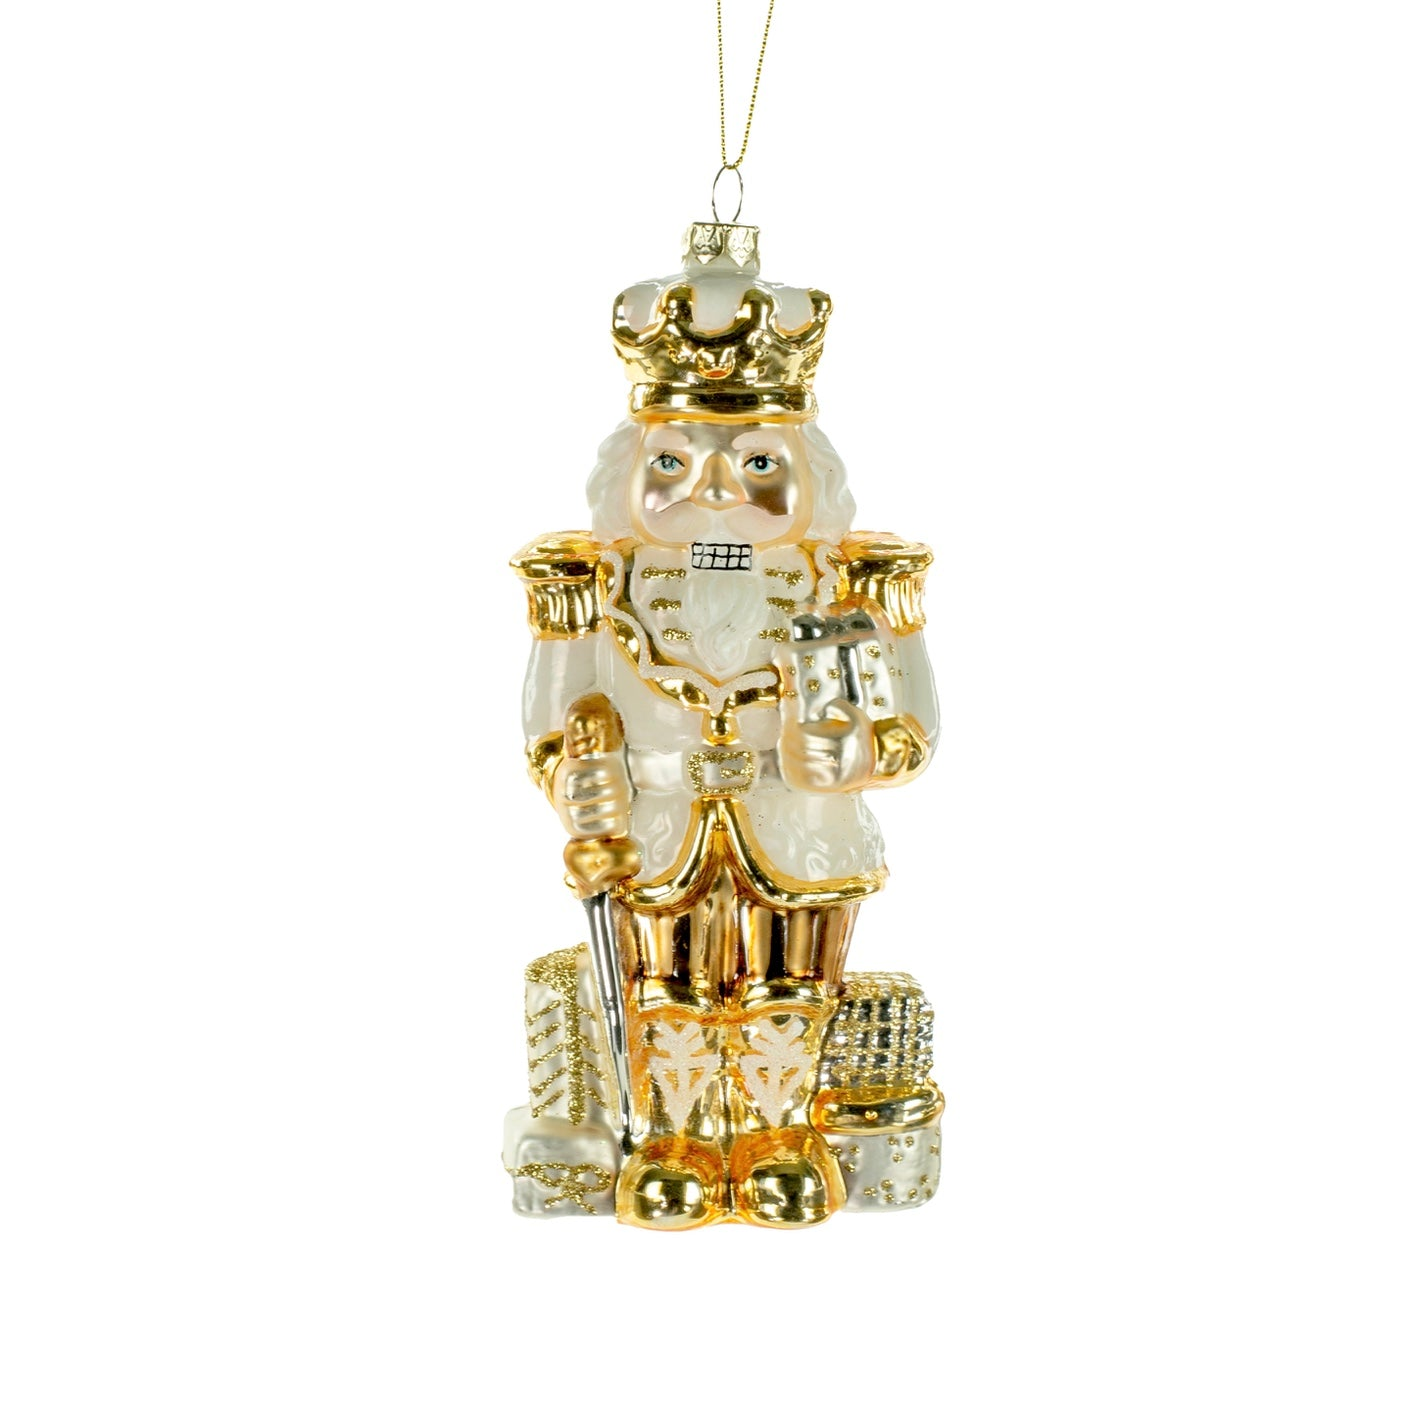 Gold and White Glass Nutcracker Ornament